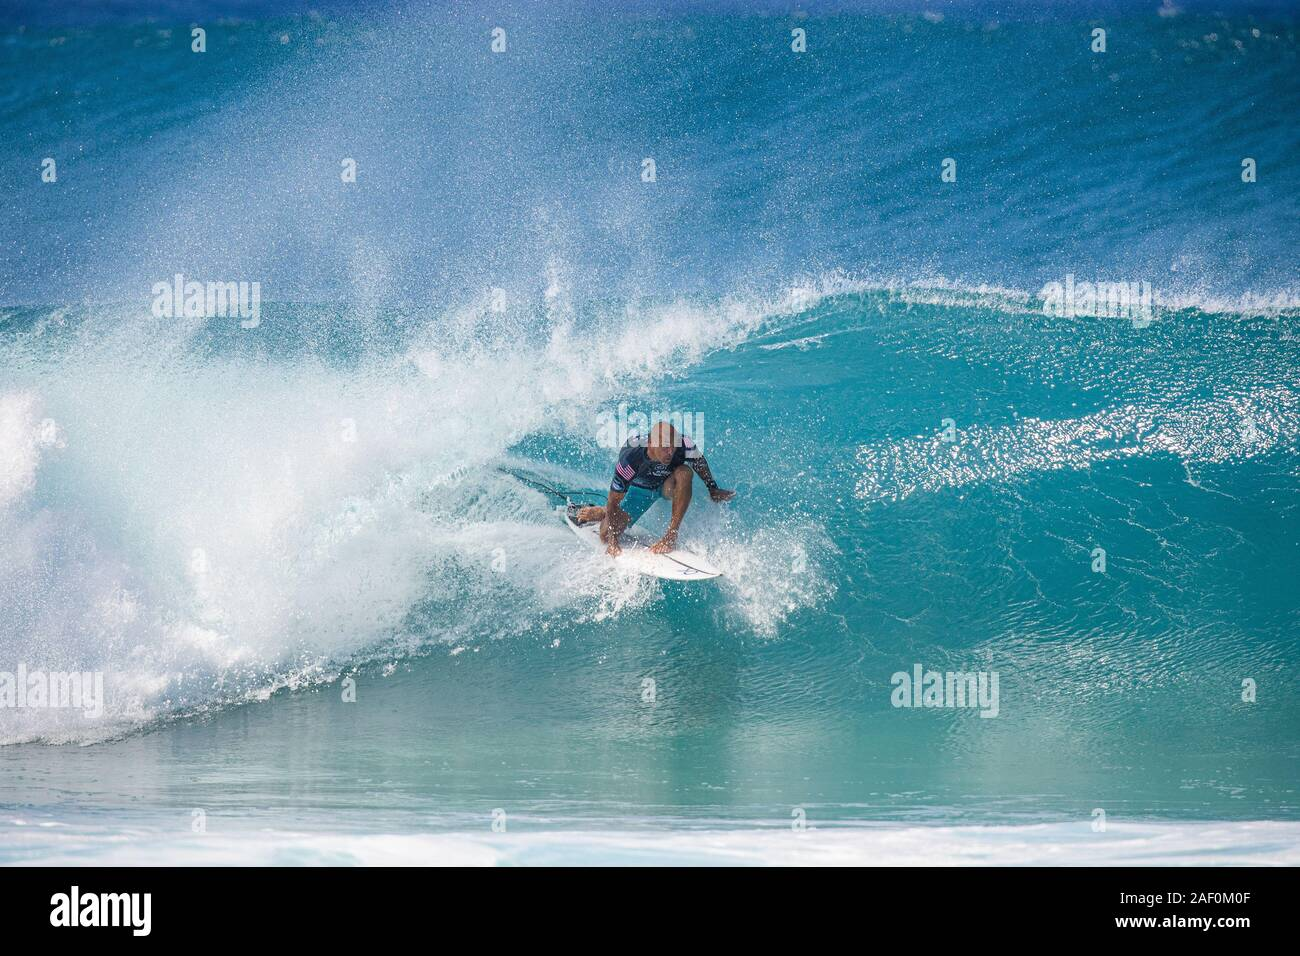 Haleiwa Hi Usa 11th Dec 2019 Kelly Slater Pictured During Heat 8 In The Round Of 32 Where He Surfed A Perfect 10 Wave At The Billabong Pipe Masters 2019 Tournament In Haleiwa hula is a very popular hula song. alamy